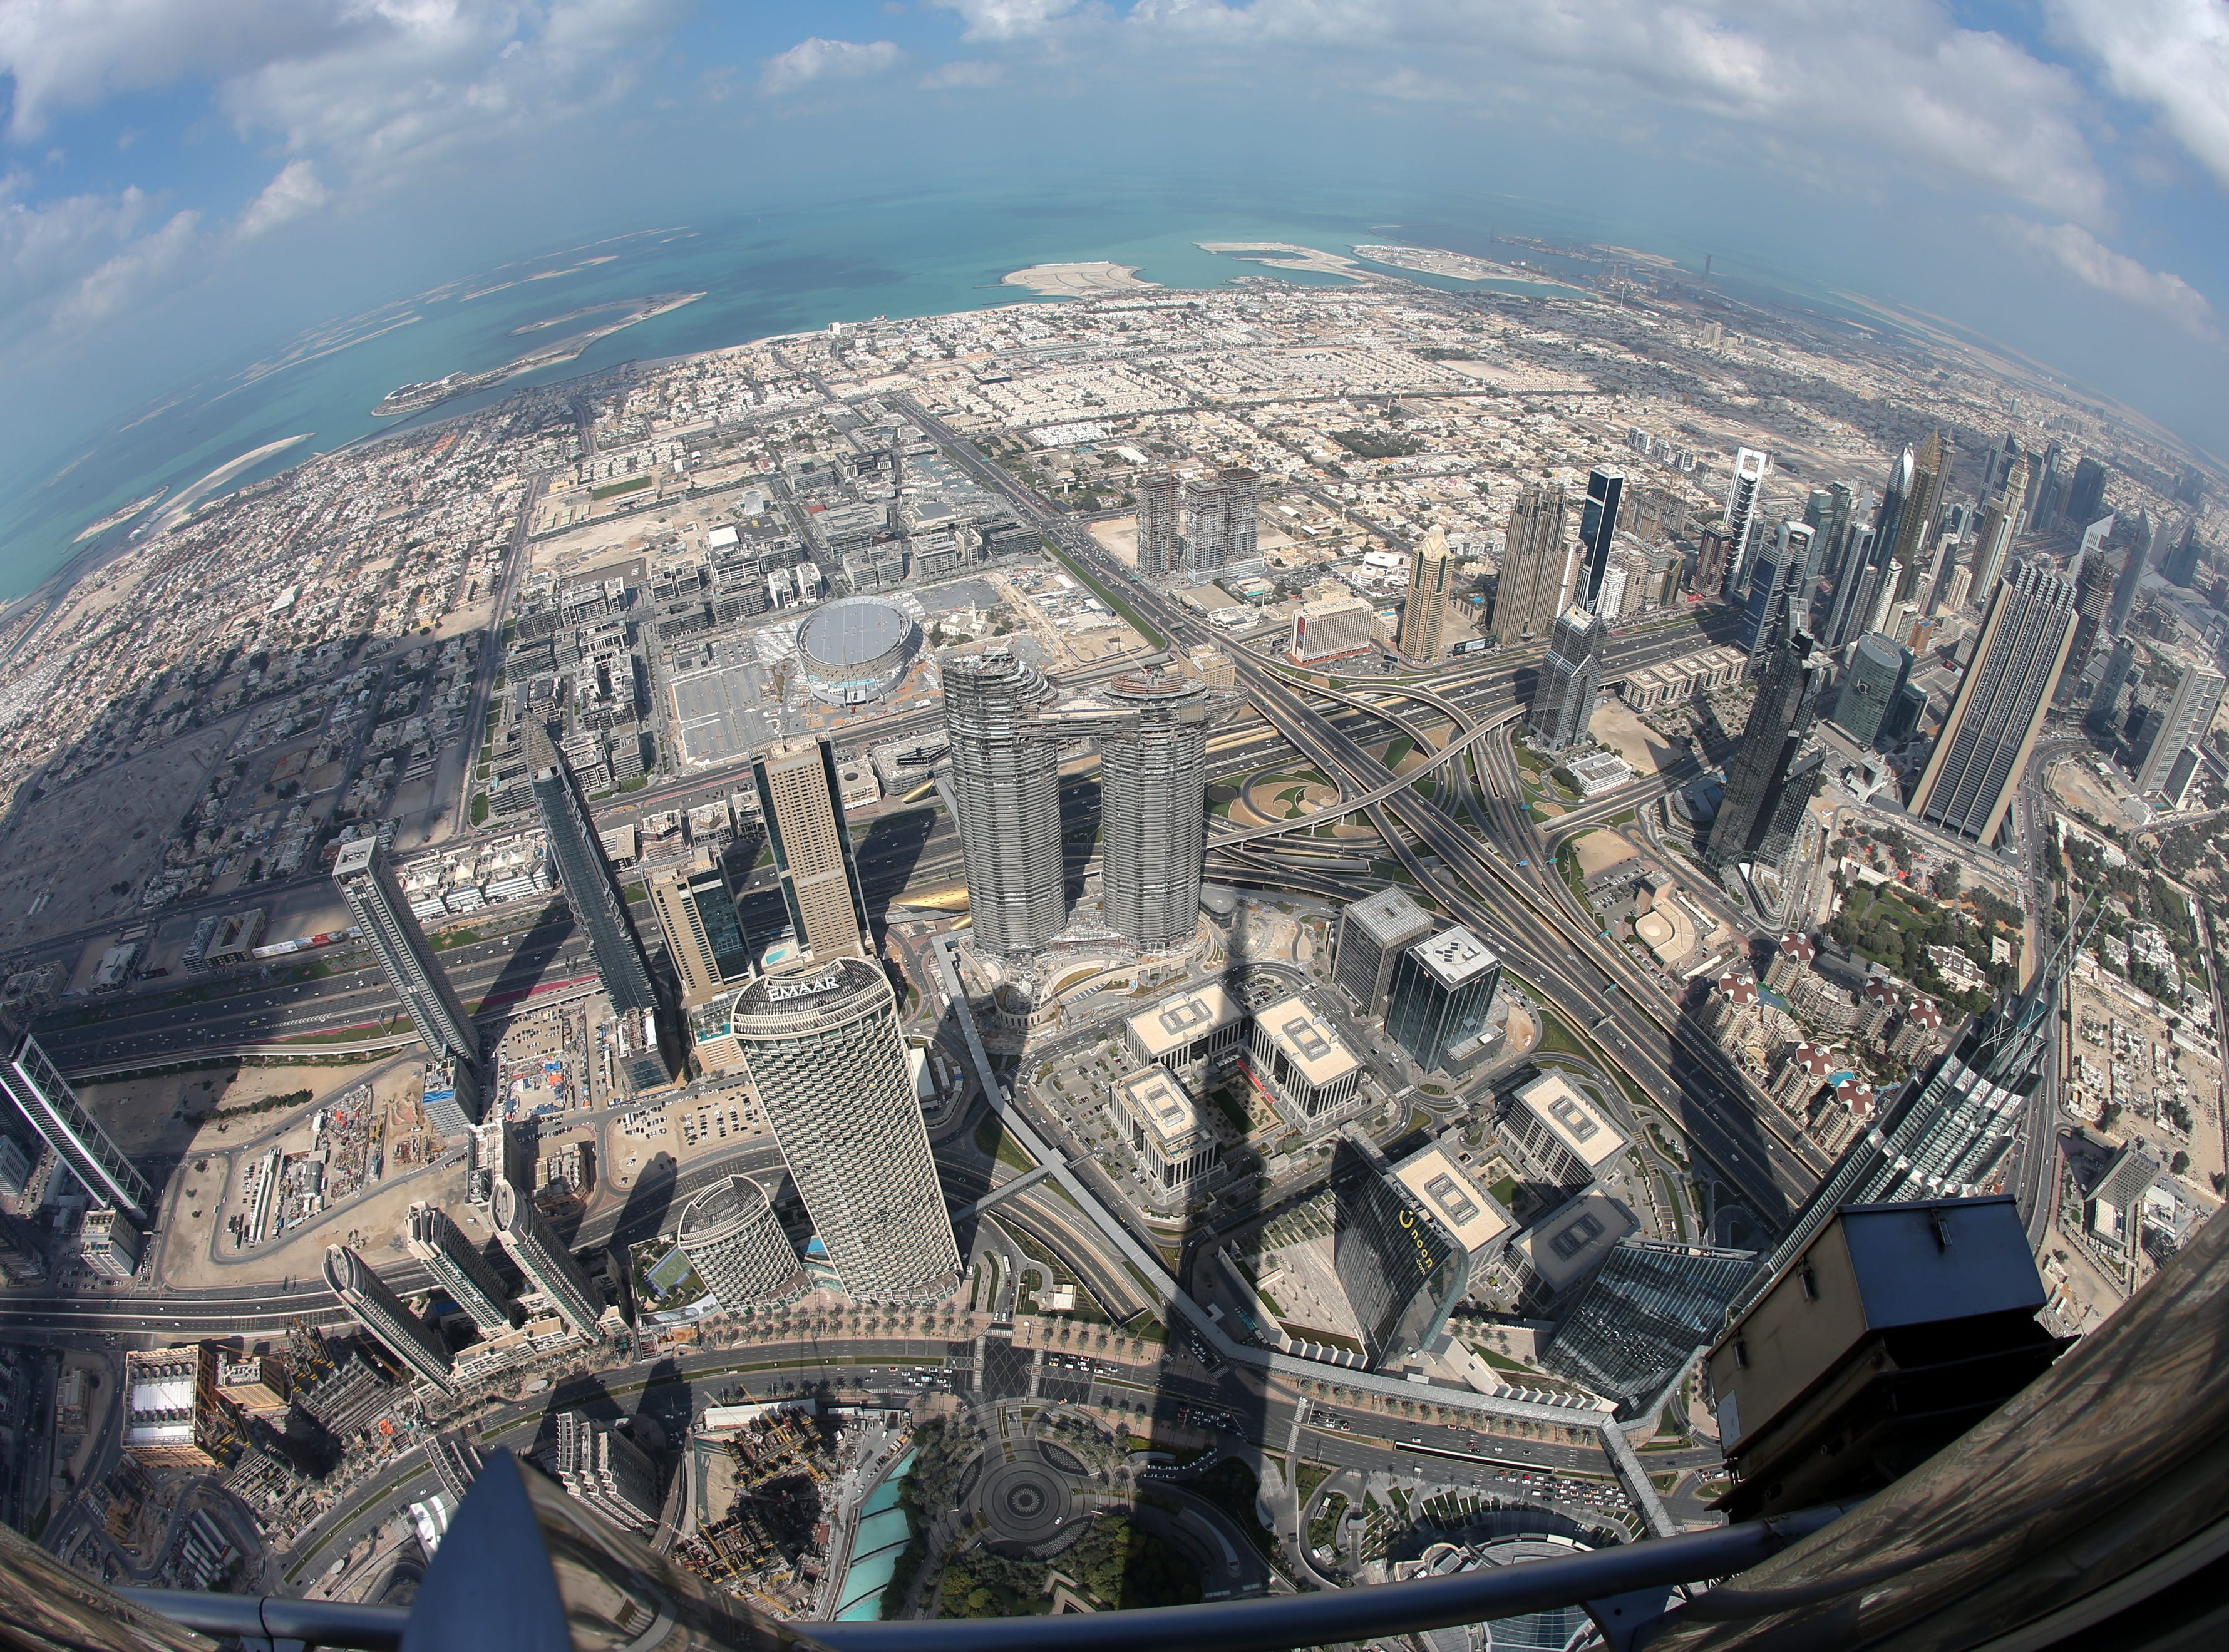 epa07367623 A picture taken with a fisheye lens shows areas close to the world's tallest building Burj Khalifa as seen from the the new highest lounge in the world at Burj Khalifa in Dubai, United Arab Emirates, 13 February 2019. Ahmad Al Falasi, Executive Director Emaar Properties announced during media briefing the opening of highest lounge in the world at Burj Khalifa located on the 152, 153, and 154 floors at 575 metres, with each have its distinctive settings assuring never before seen views of the city.  EPA-EFE/ALI HAIDER ORG XMIT: XAH051